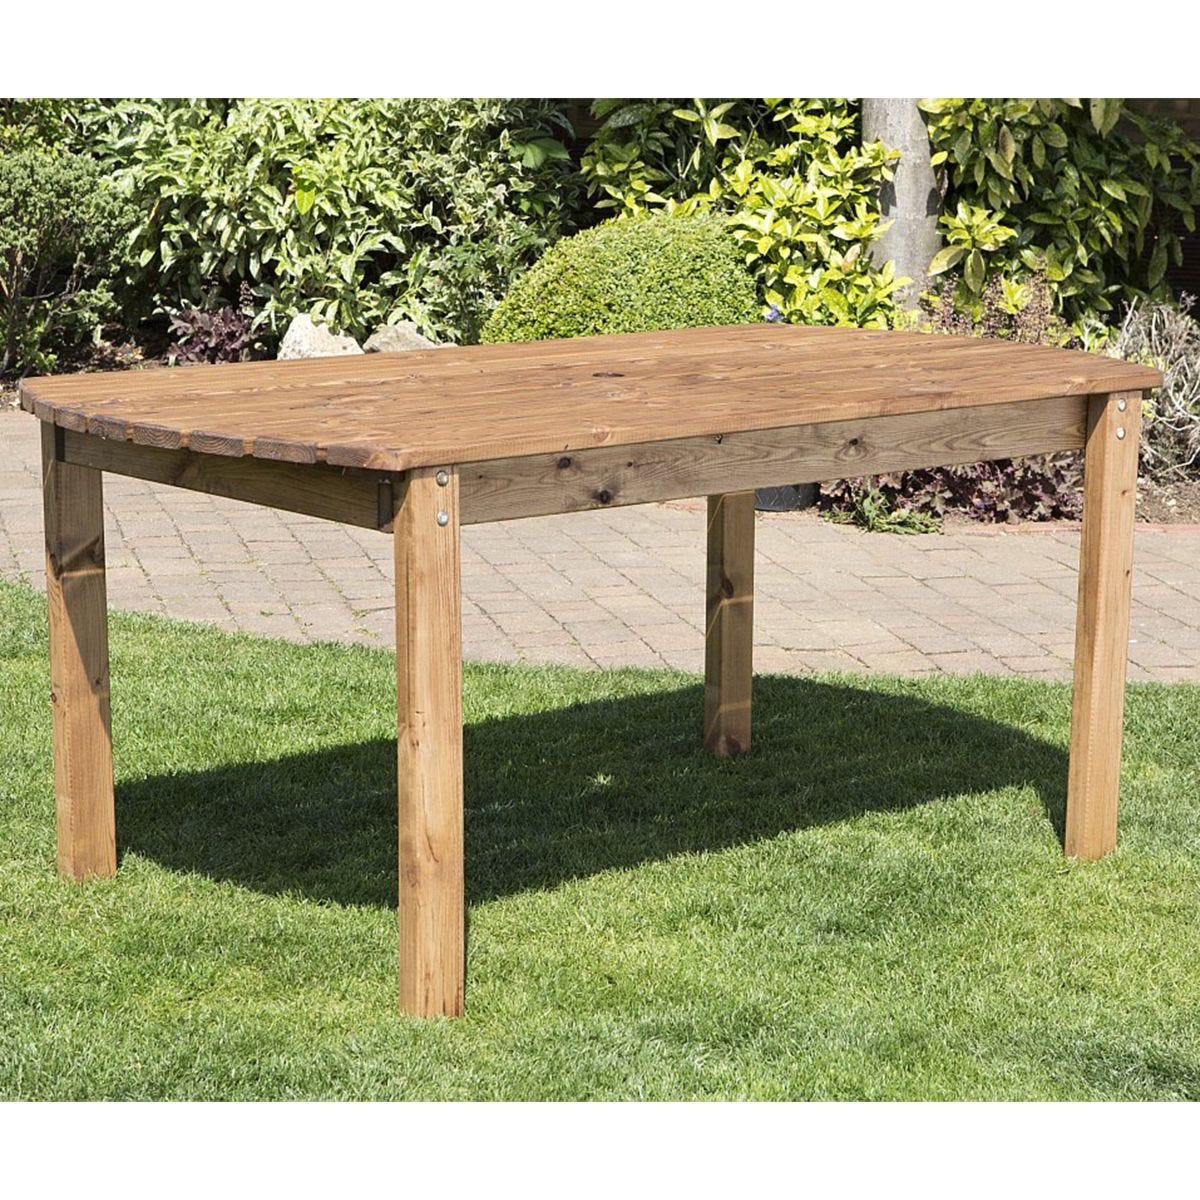 Charles Taylor Six Seater Wooden Rectangle Table